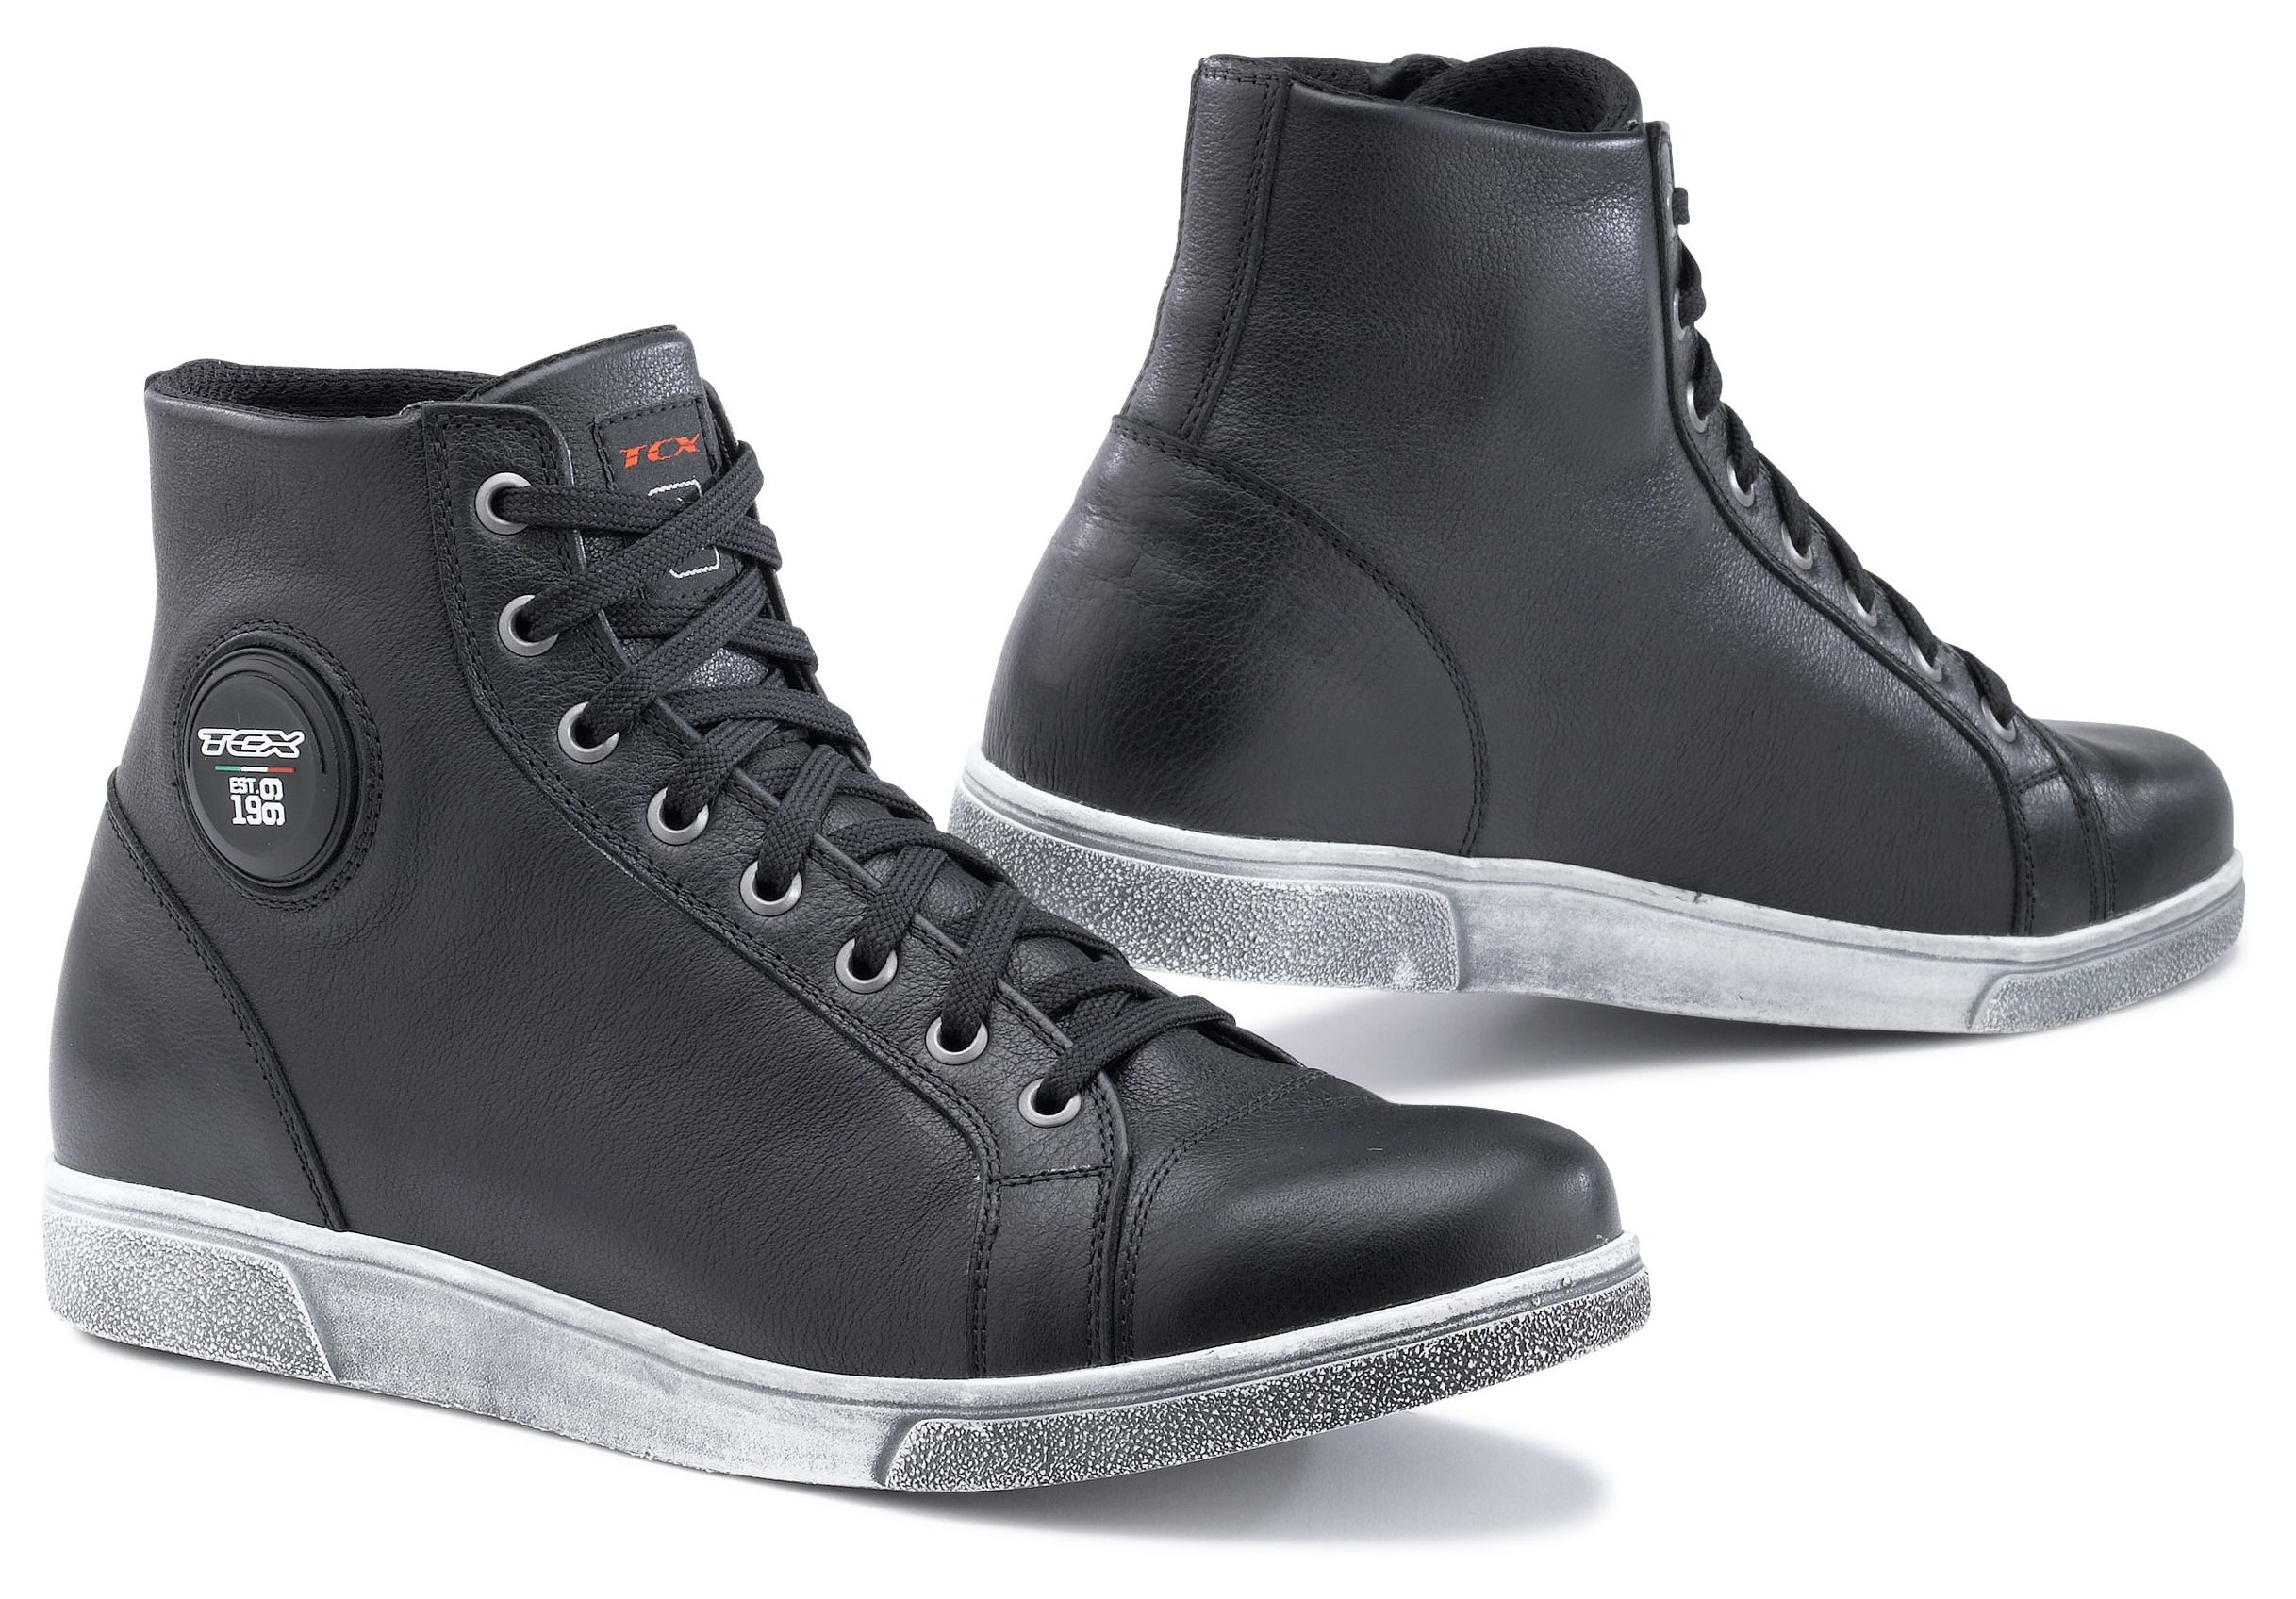 Motorcycle Boots & Riding Shoes